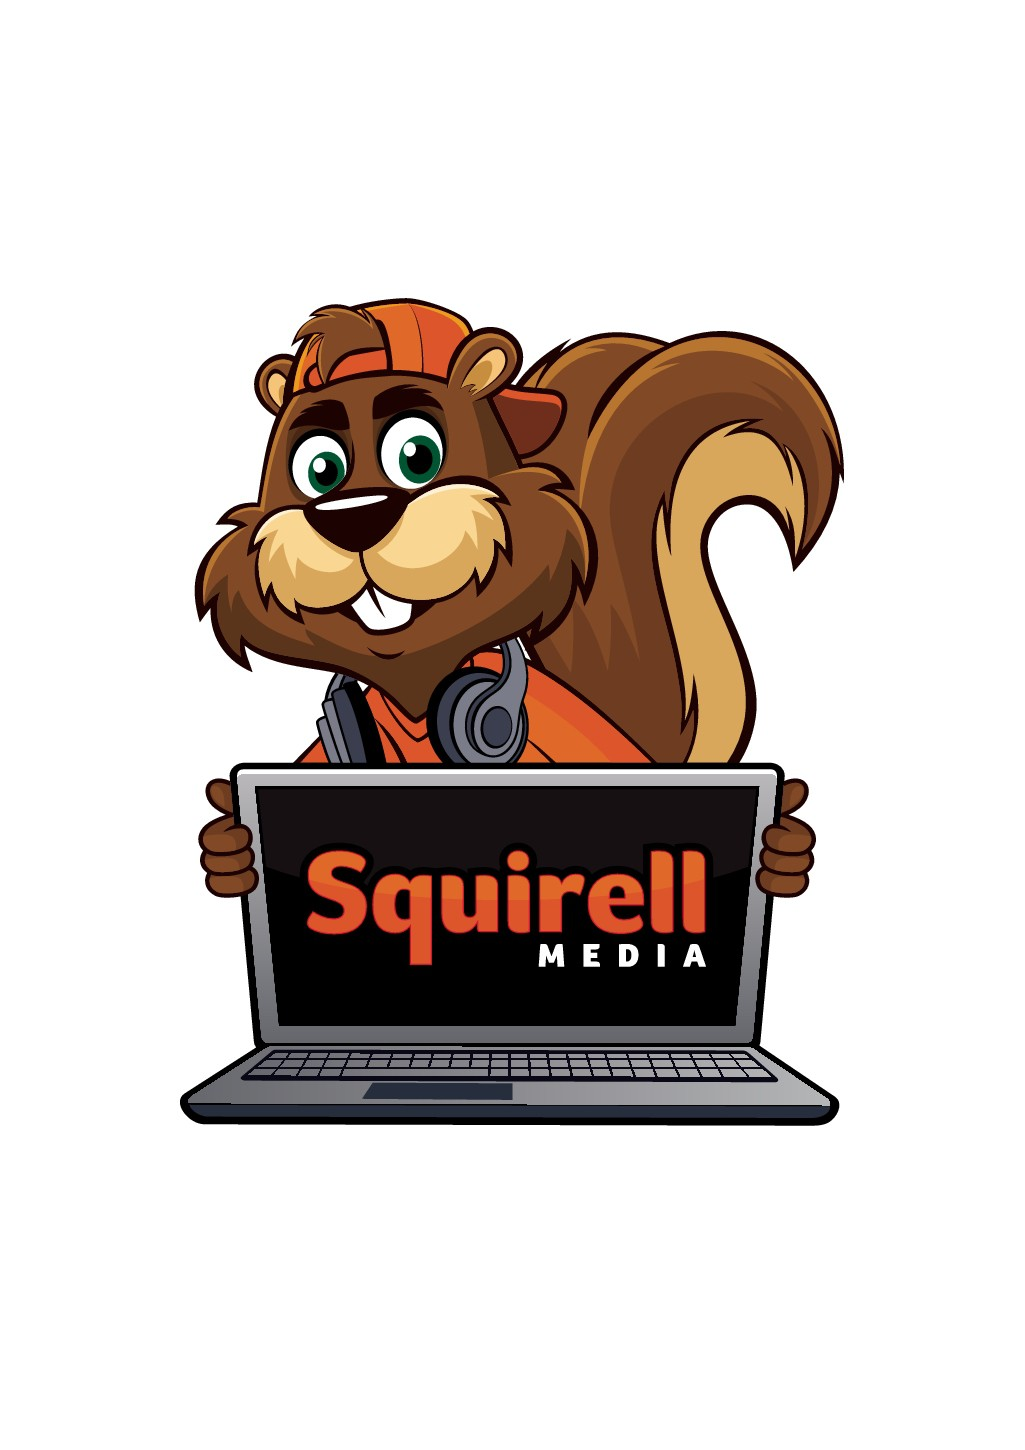 Squirell Media Needs A Kick Ass Logo!